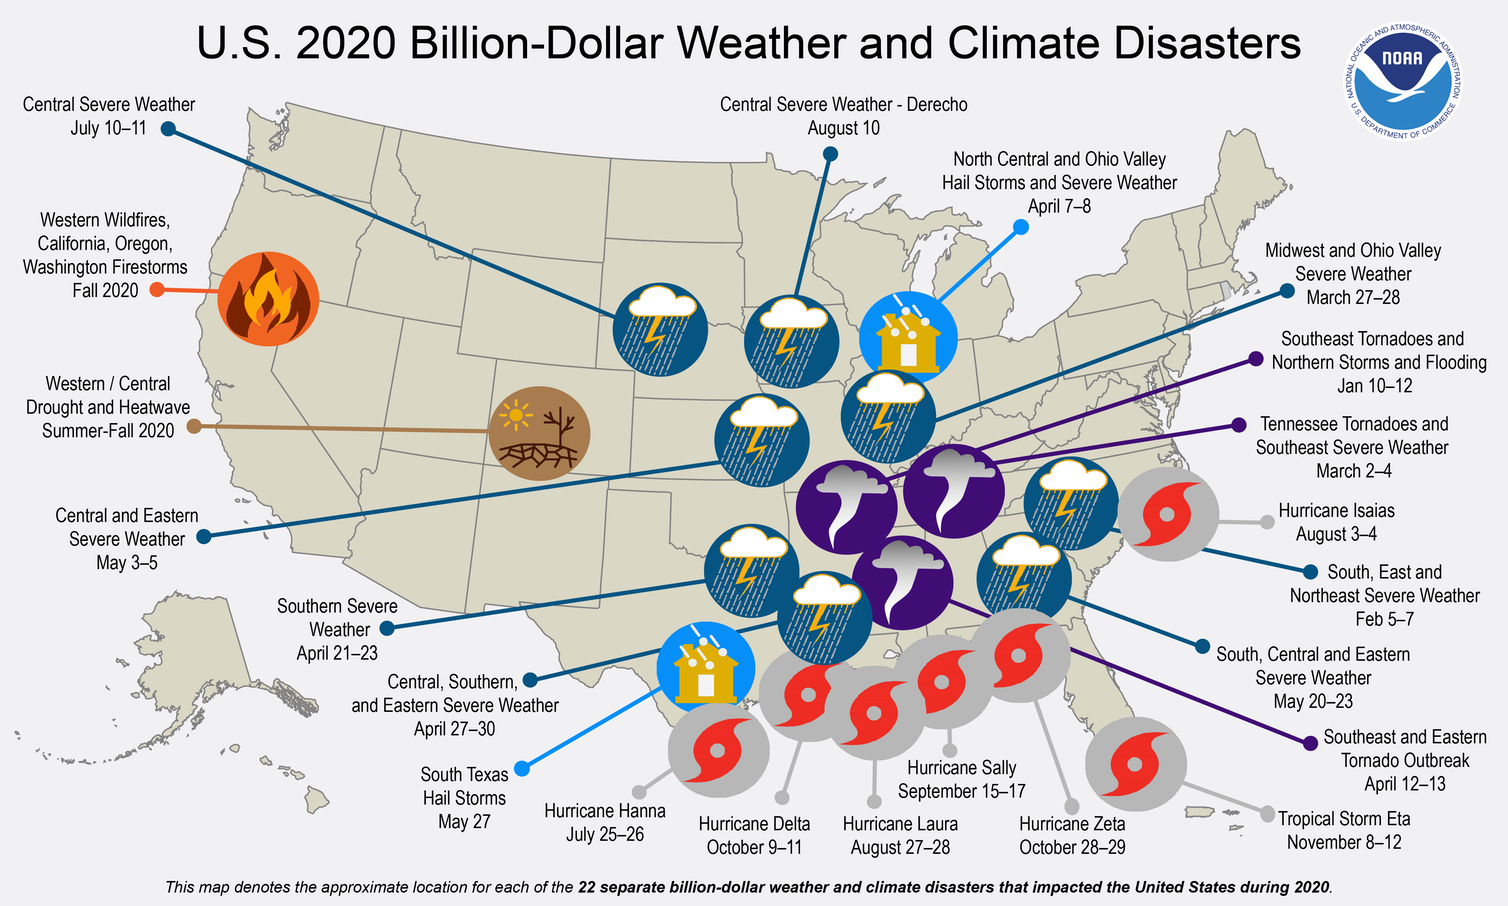 After a record 22 billion-dollar disasters in 2020, it's time to make US disaster policy more effective and equitable – here's how